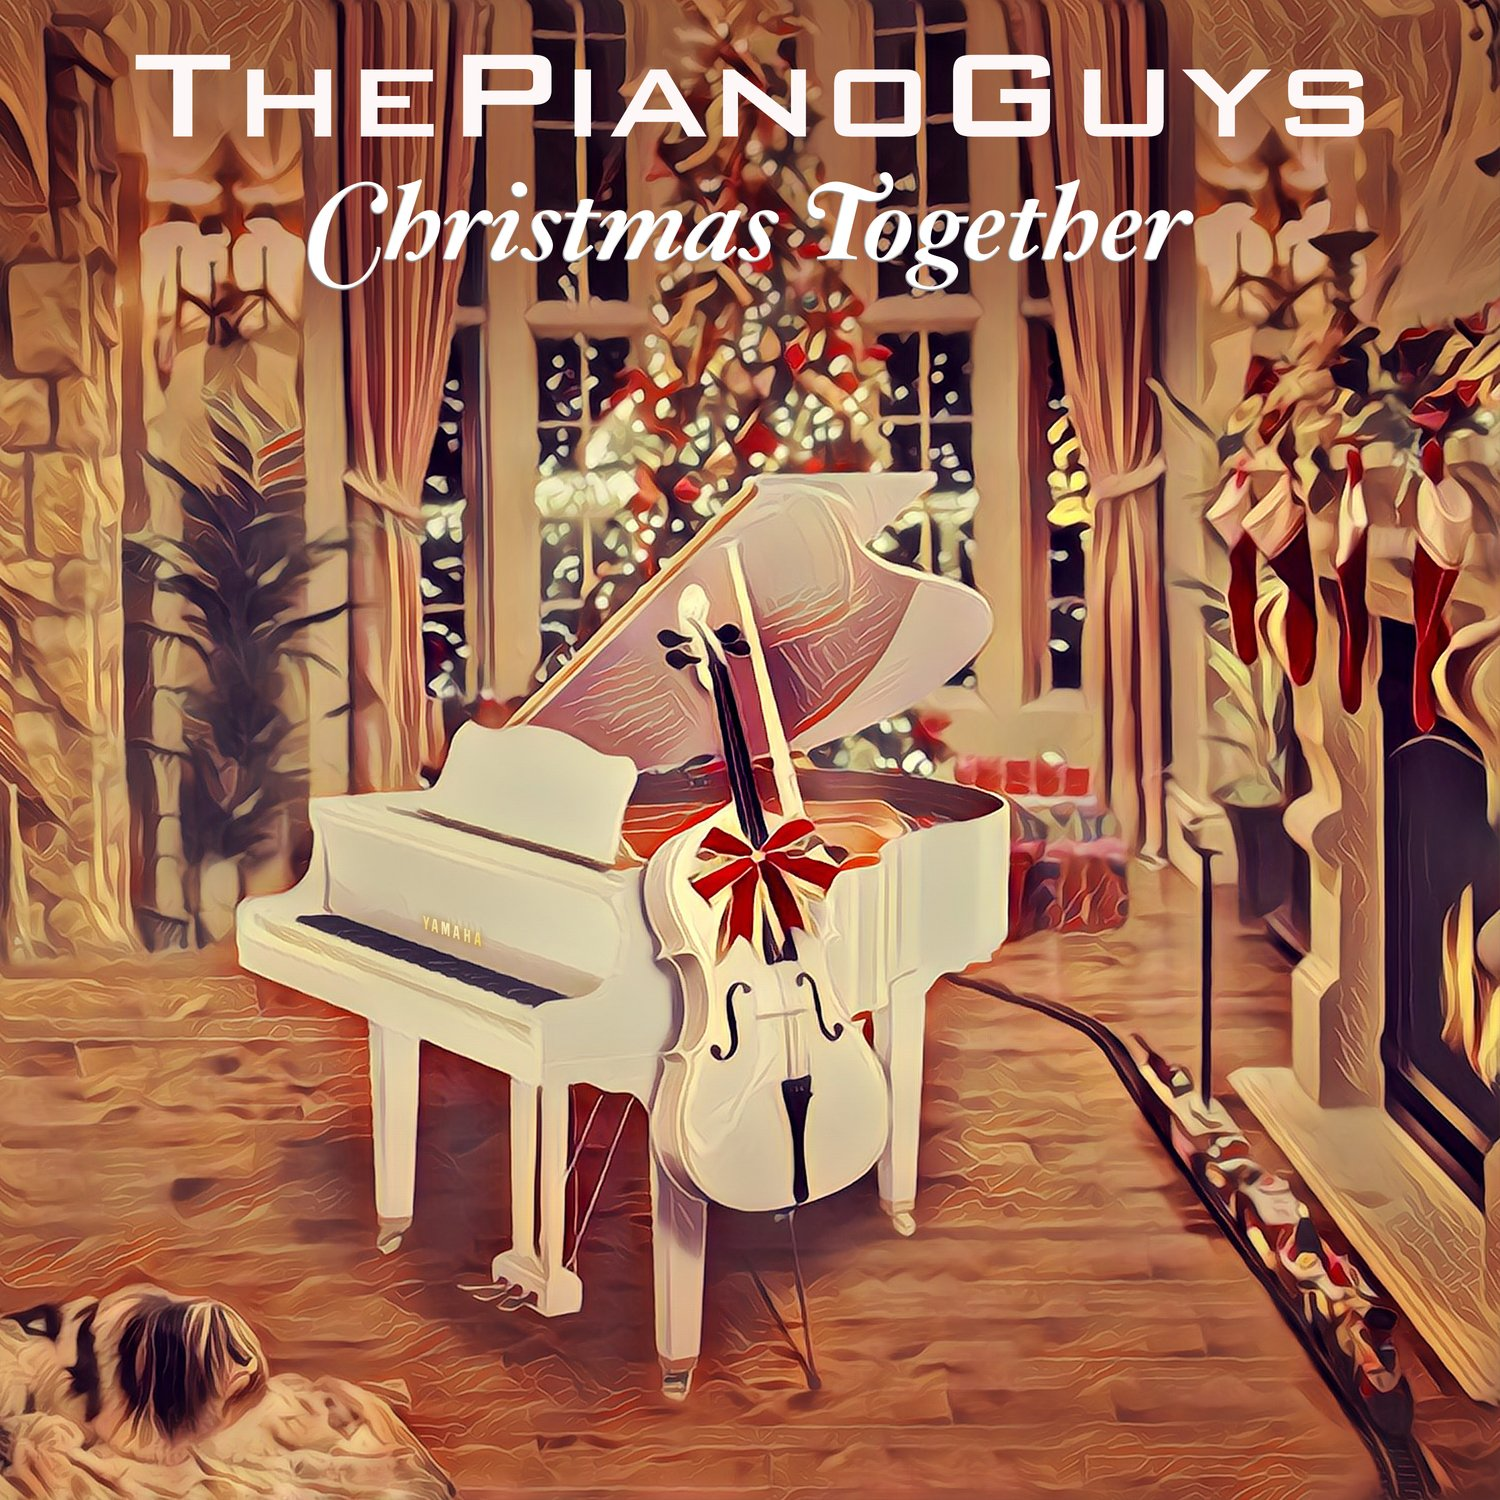 Christmas Together by Masterworks